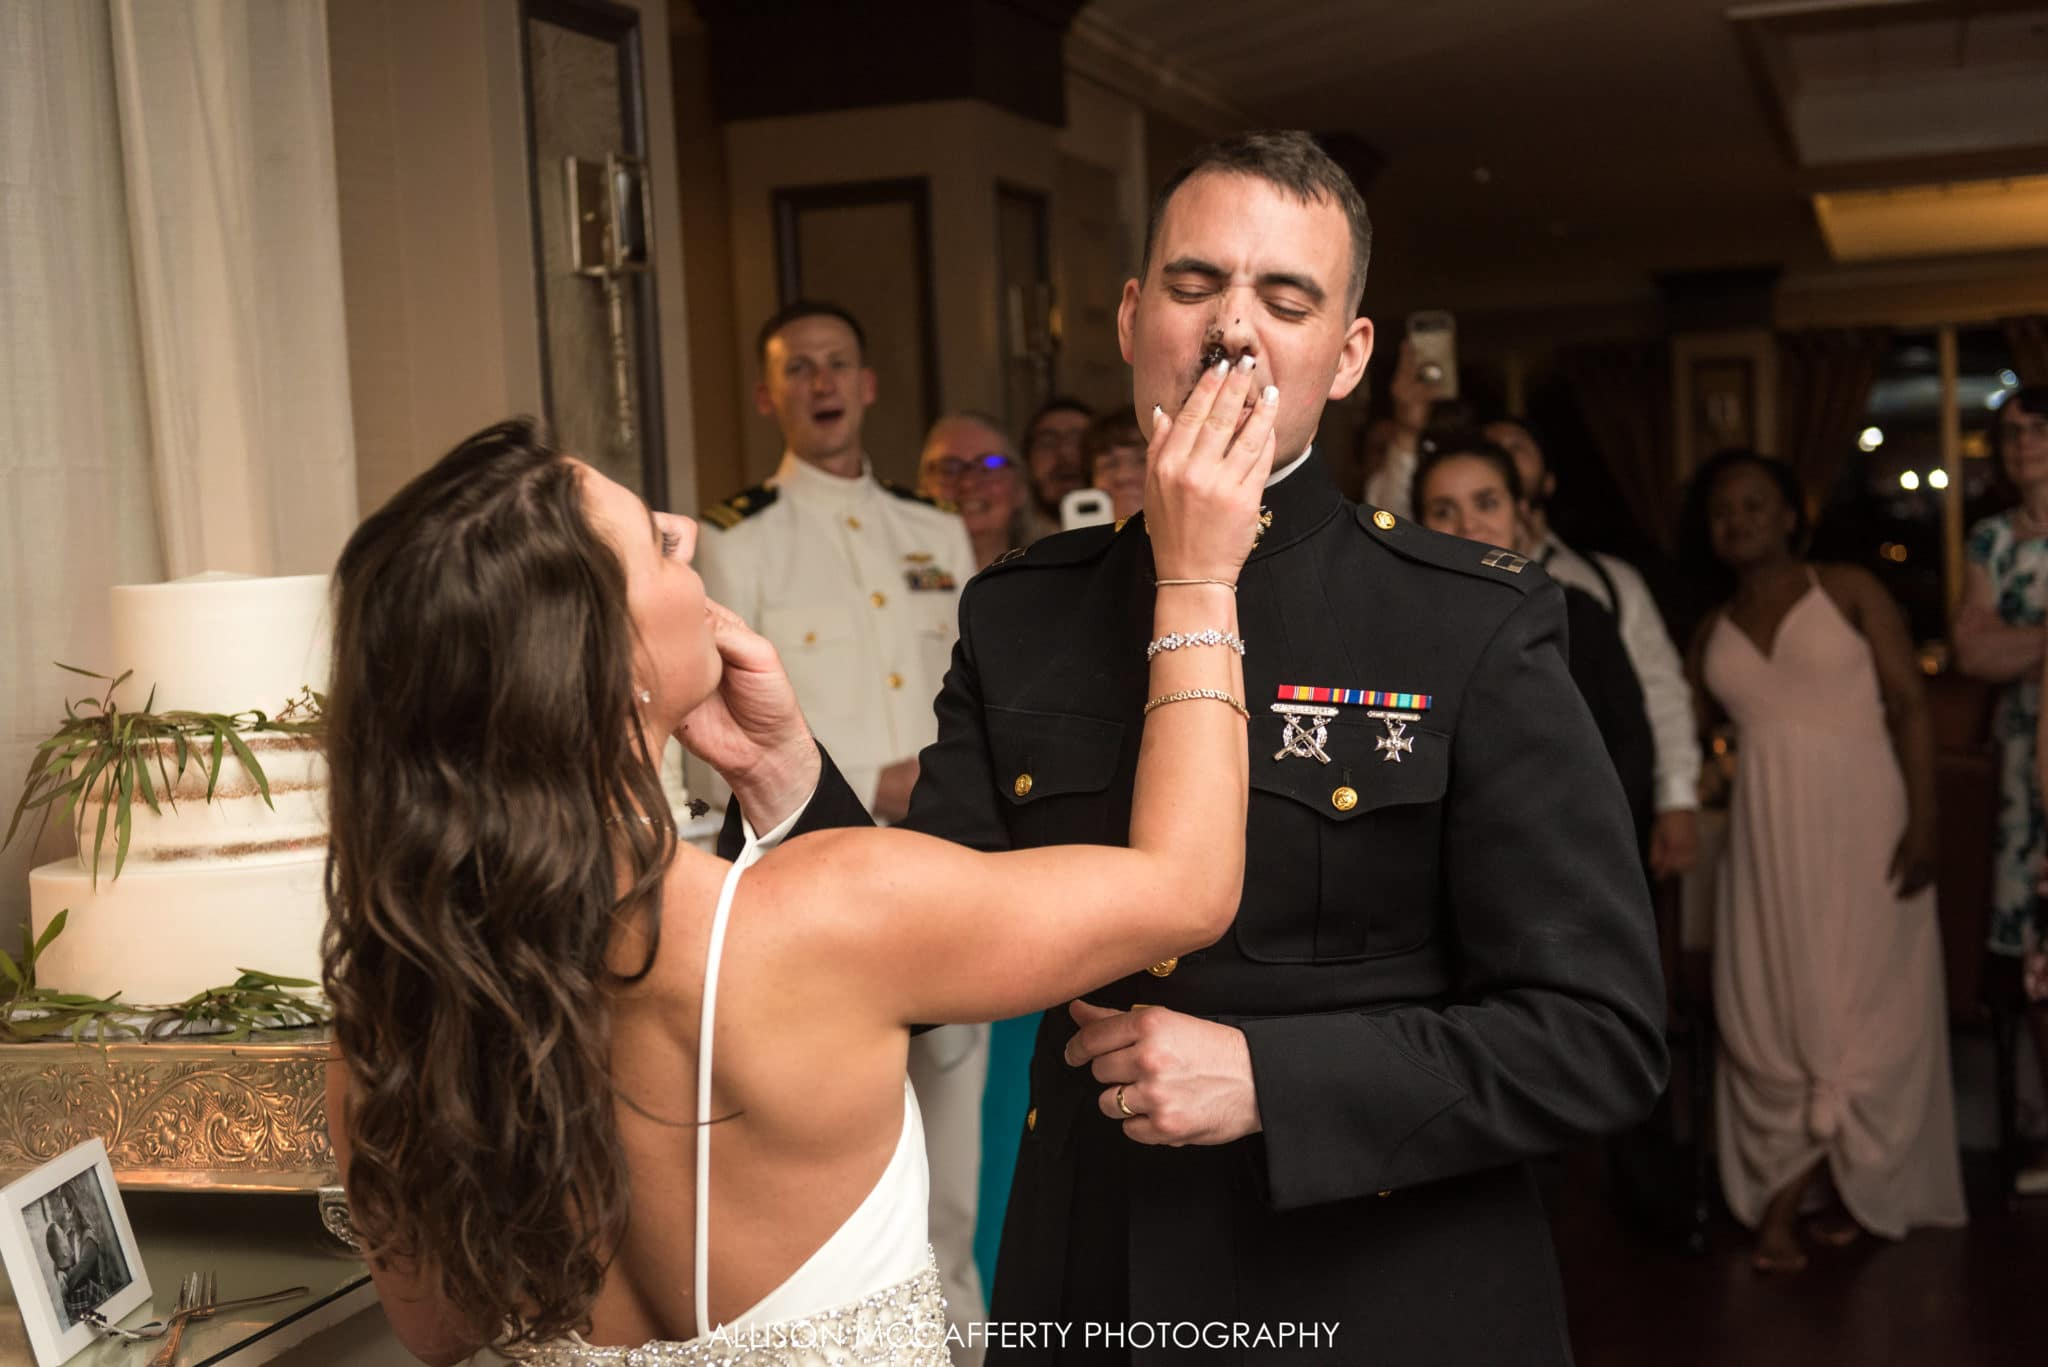 cake smash in grooms face at wedding